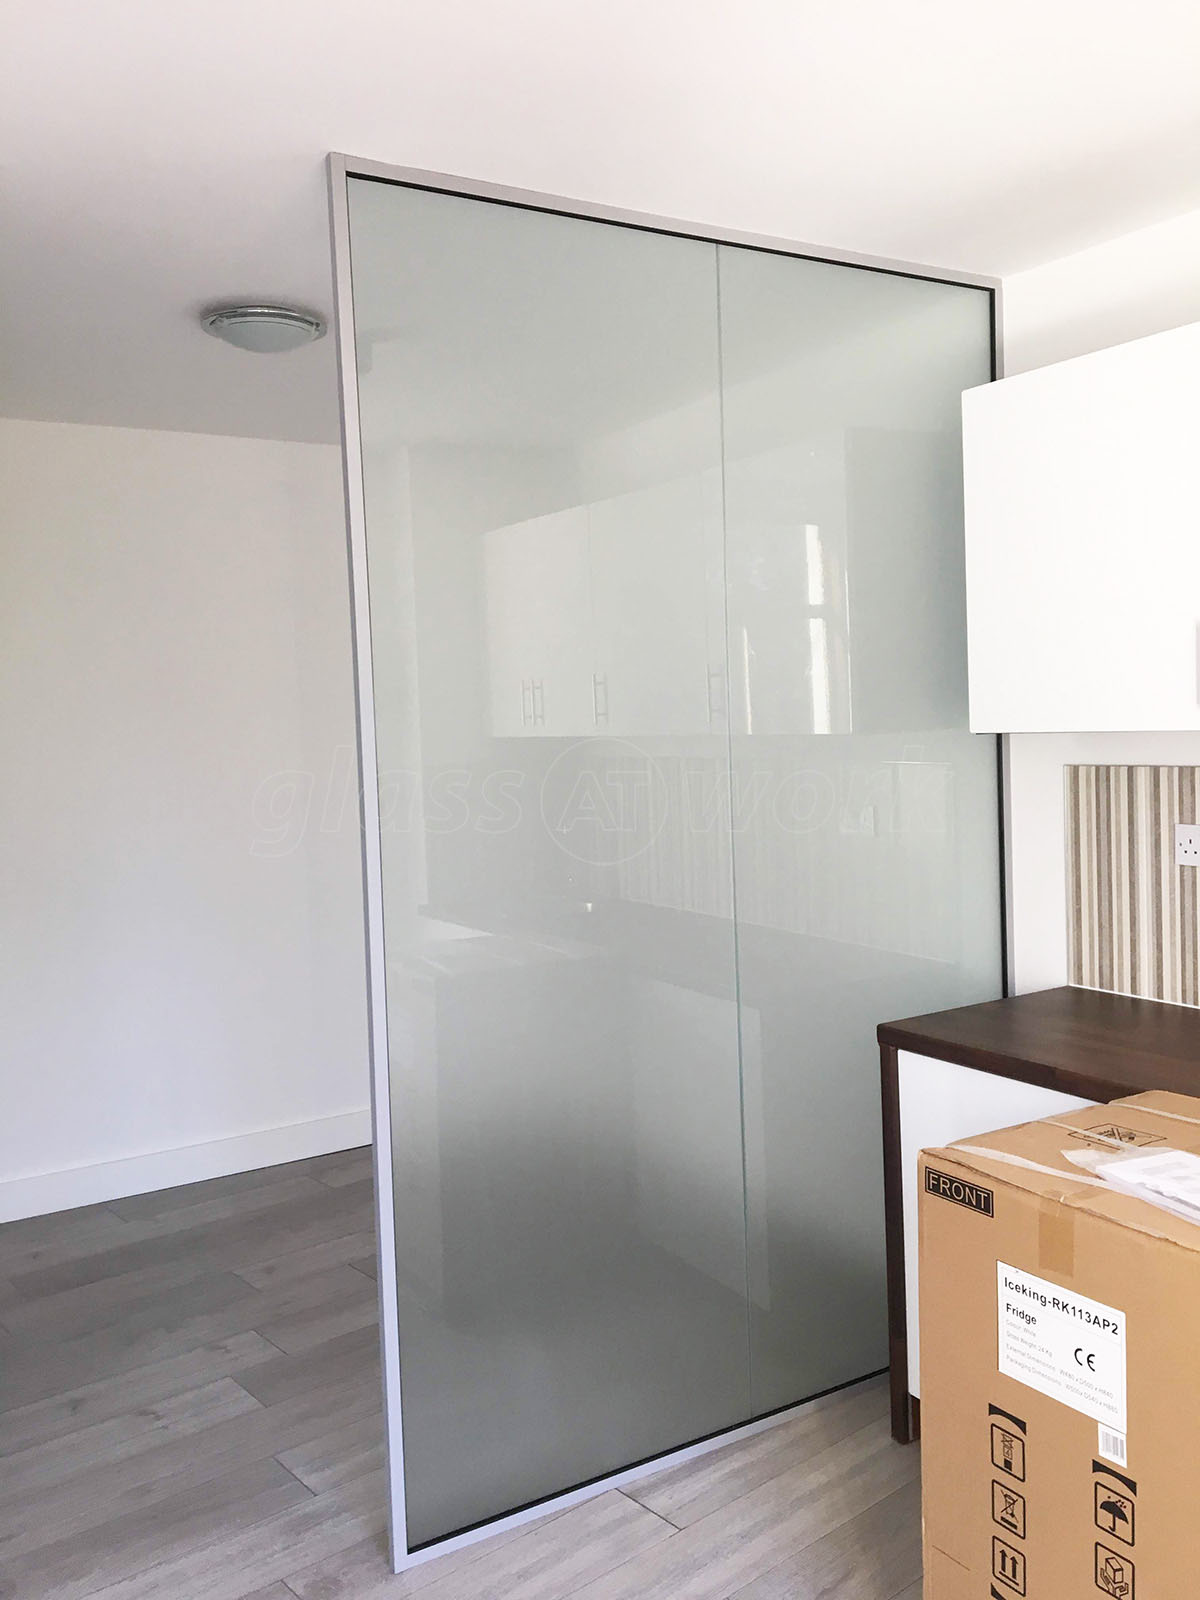 Open Glass Wall Glass Partitions At Decorean Ltd Lewisham London